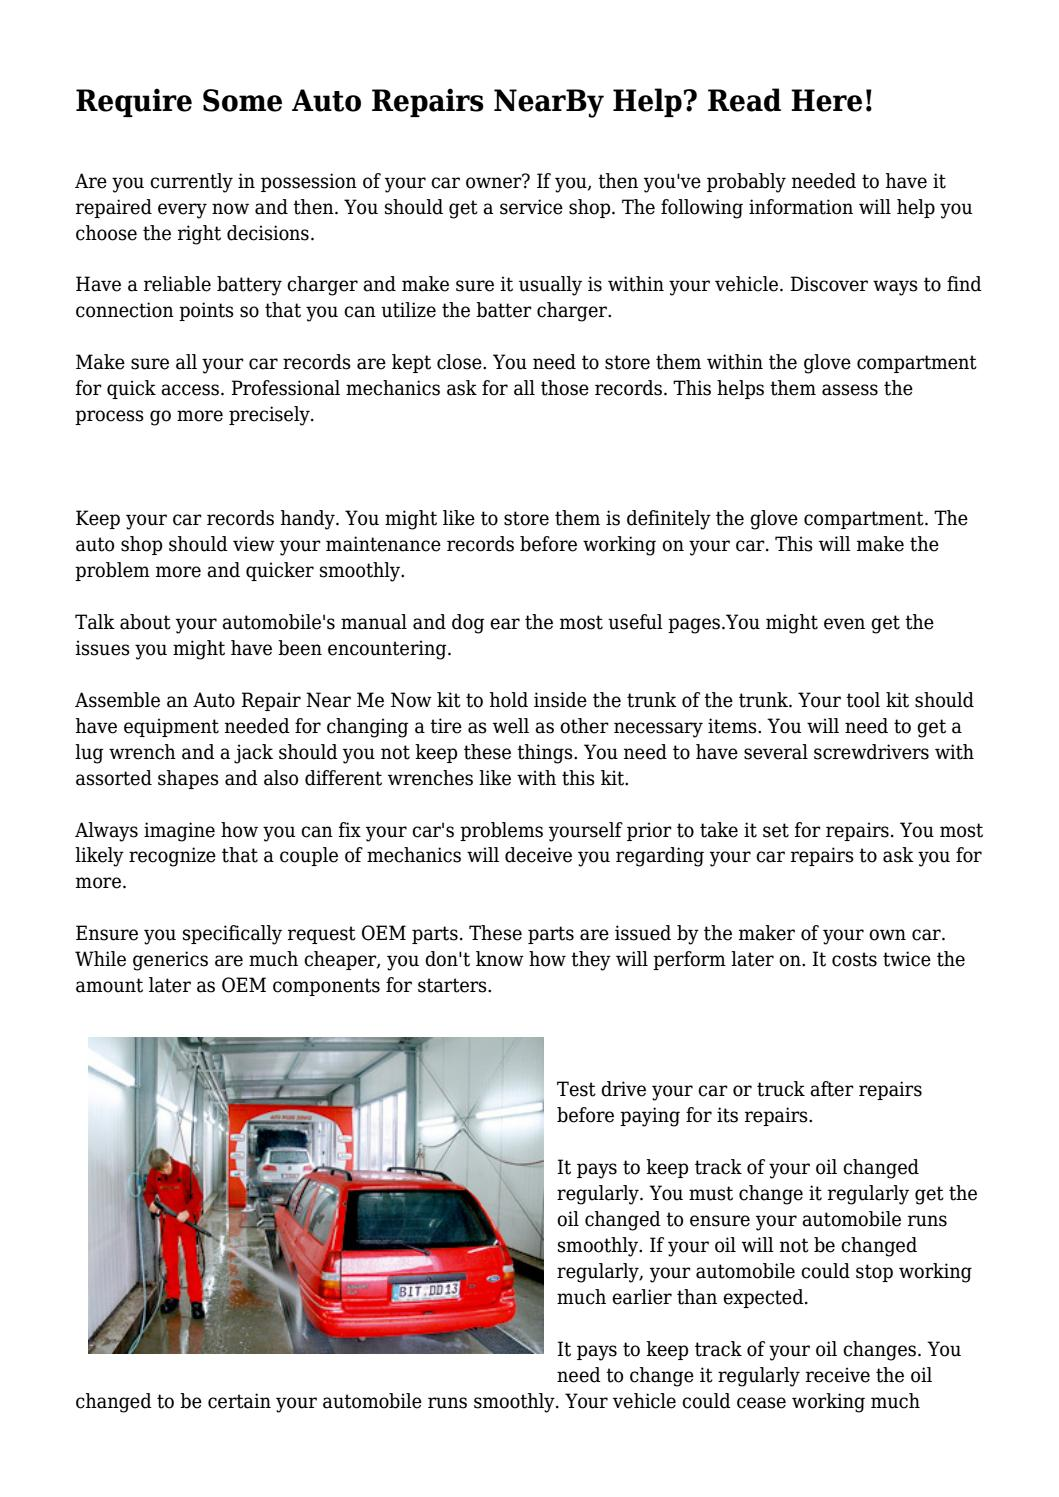 Require some auto repairs nearby help read here by utterjug3114 require some auto repairs nearby help read here by utterjug3114 issuu solutioingenieria Images